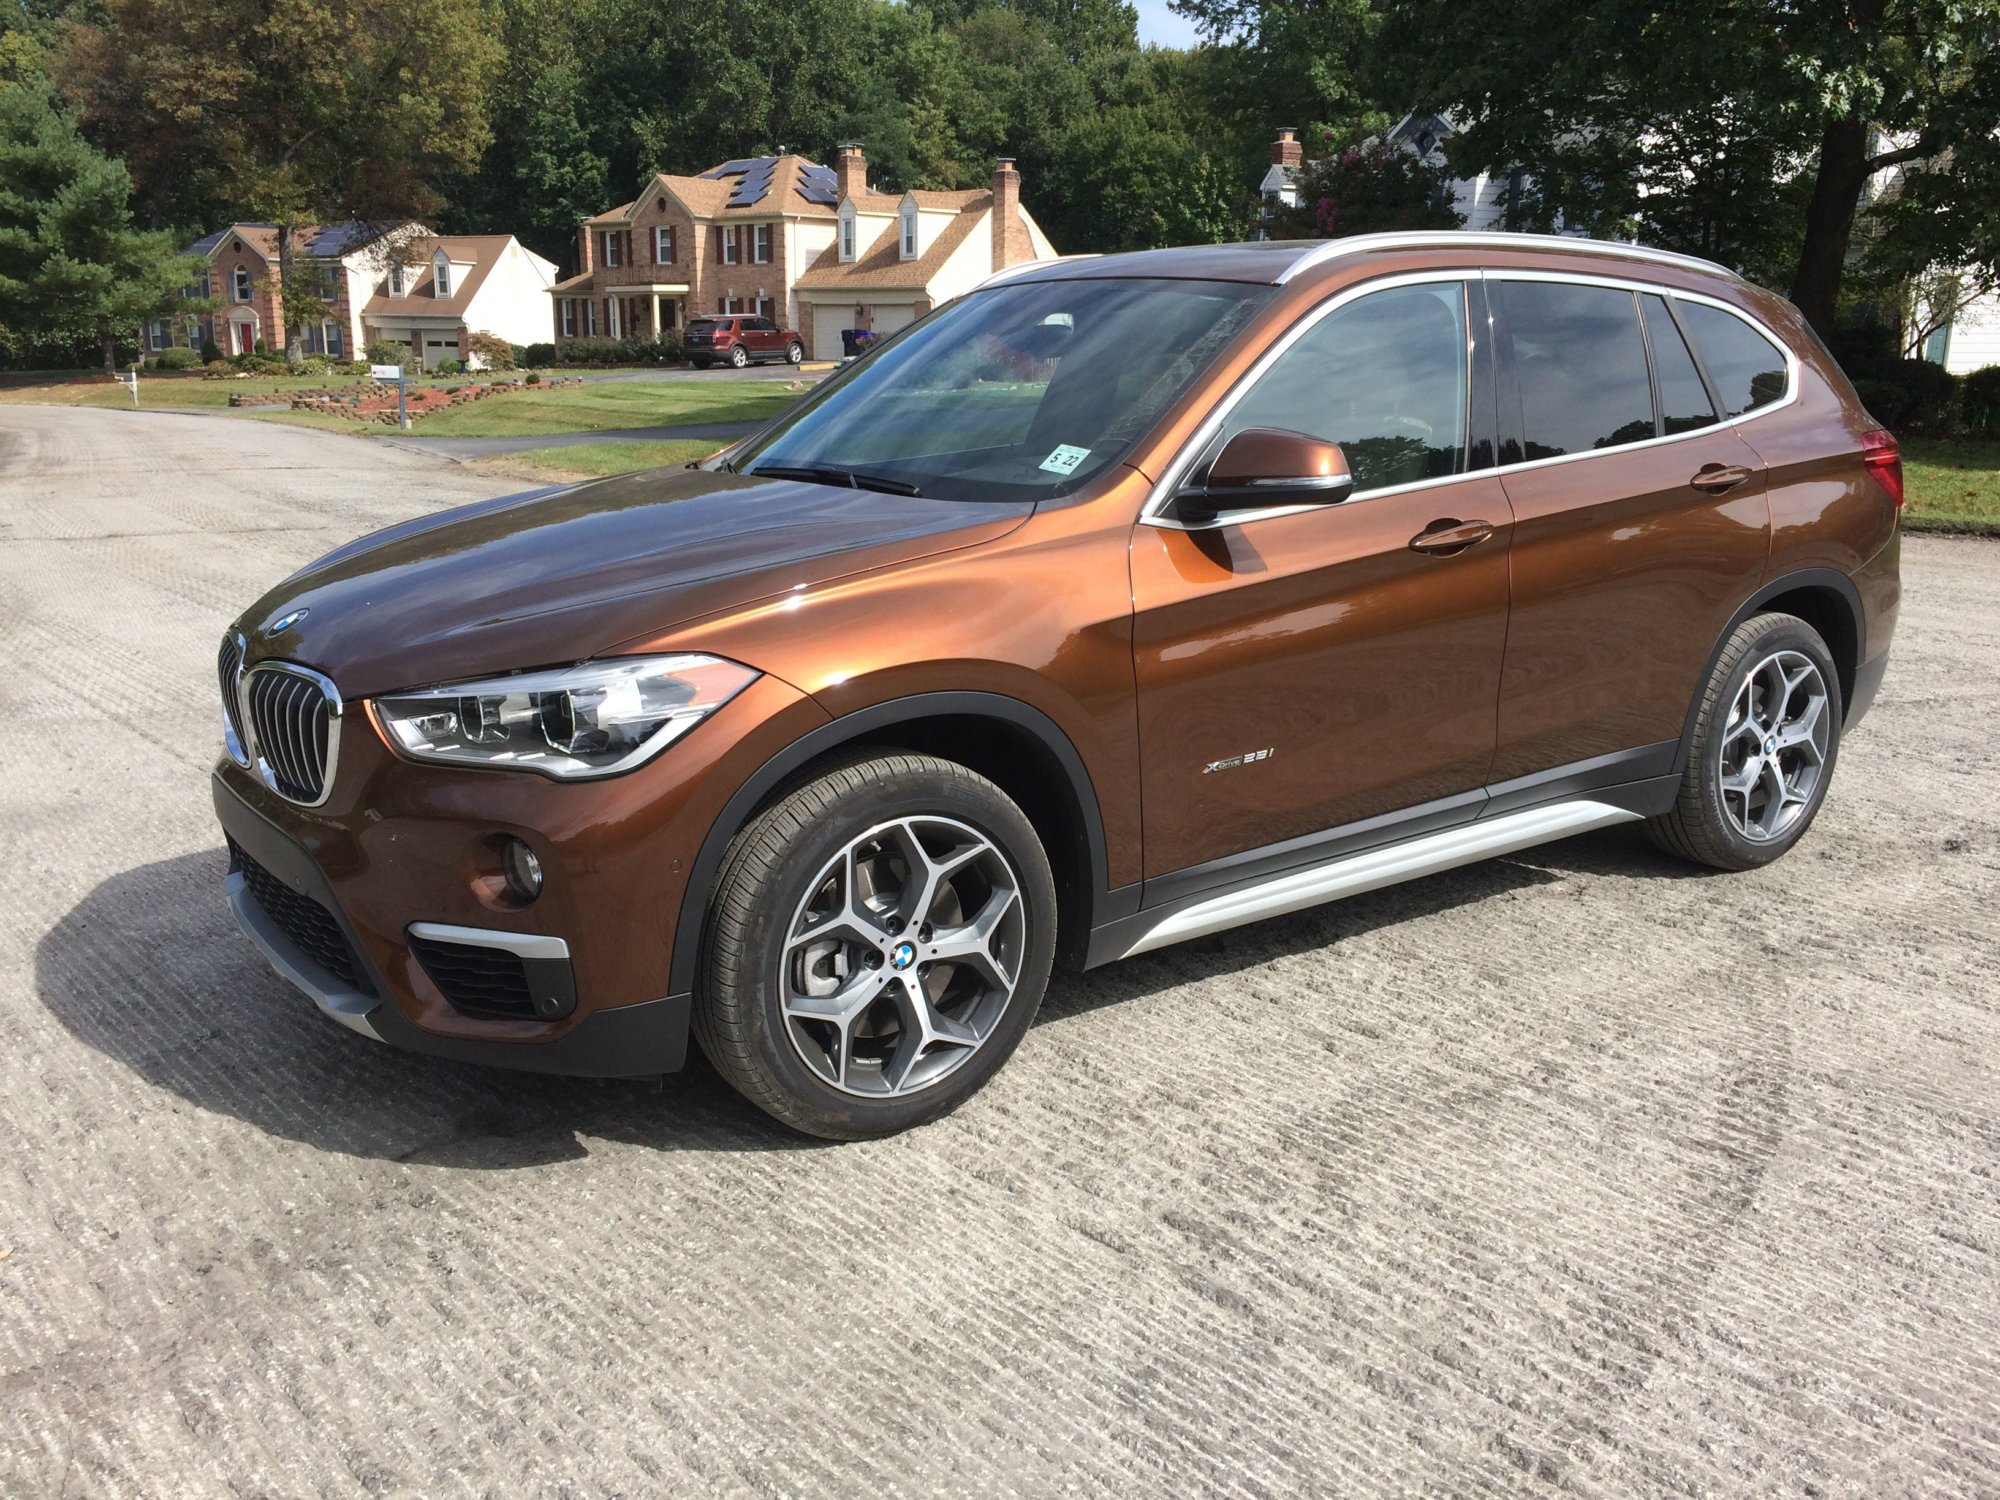 drive review car bmw original reviews s and crossover driver photo first